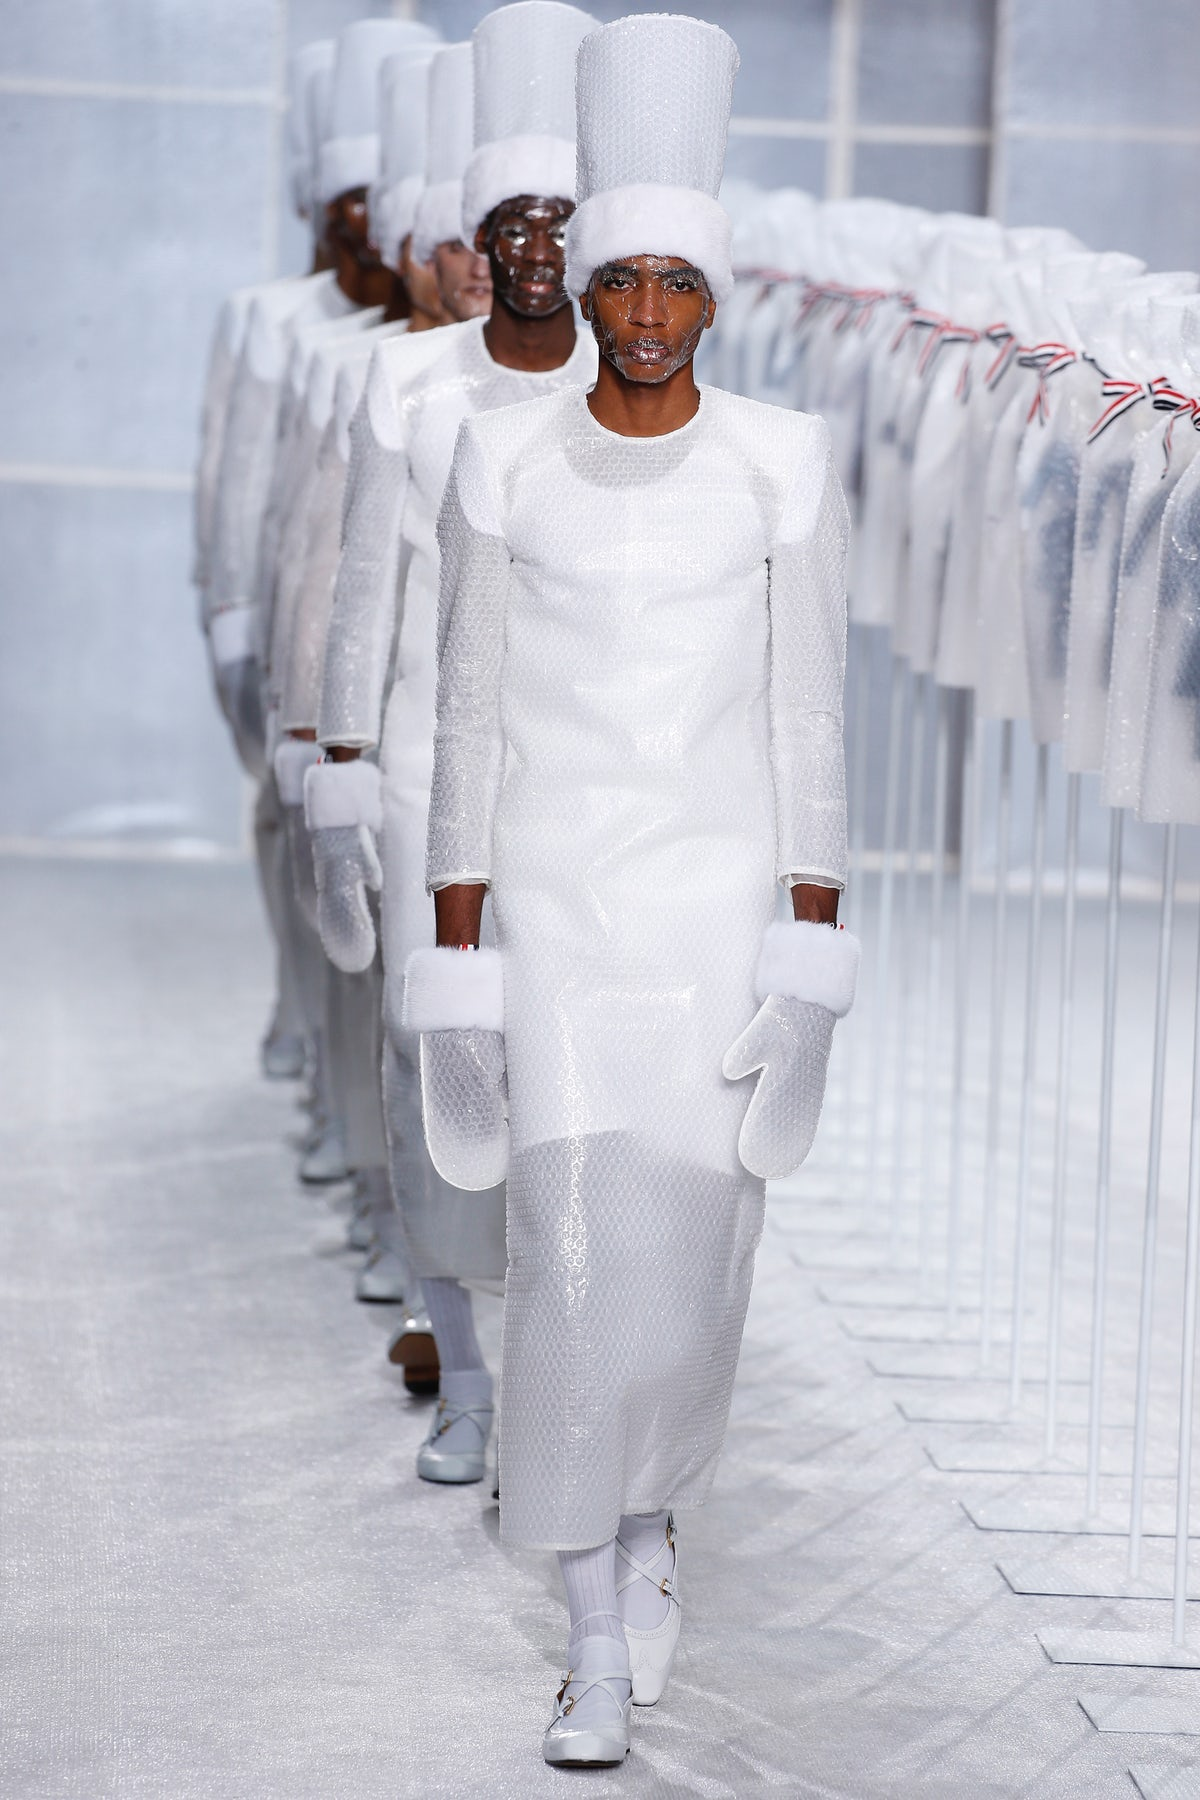 Thom Browne's Tripartite Essence